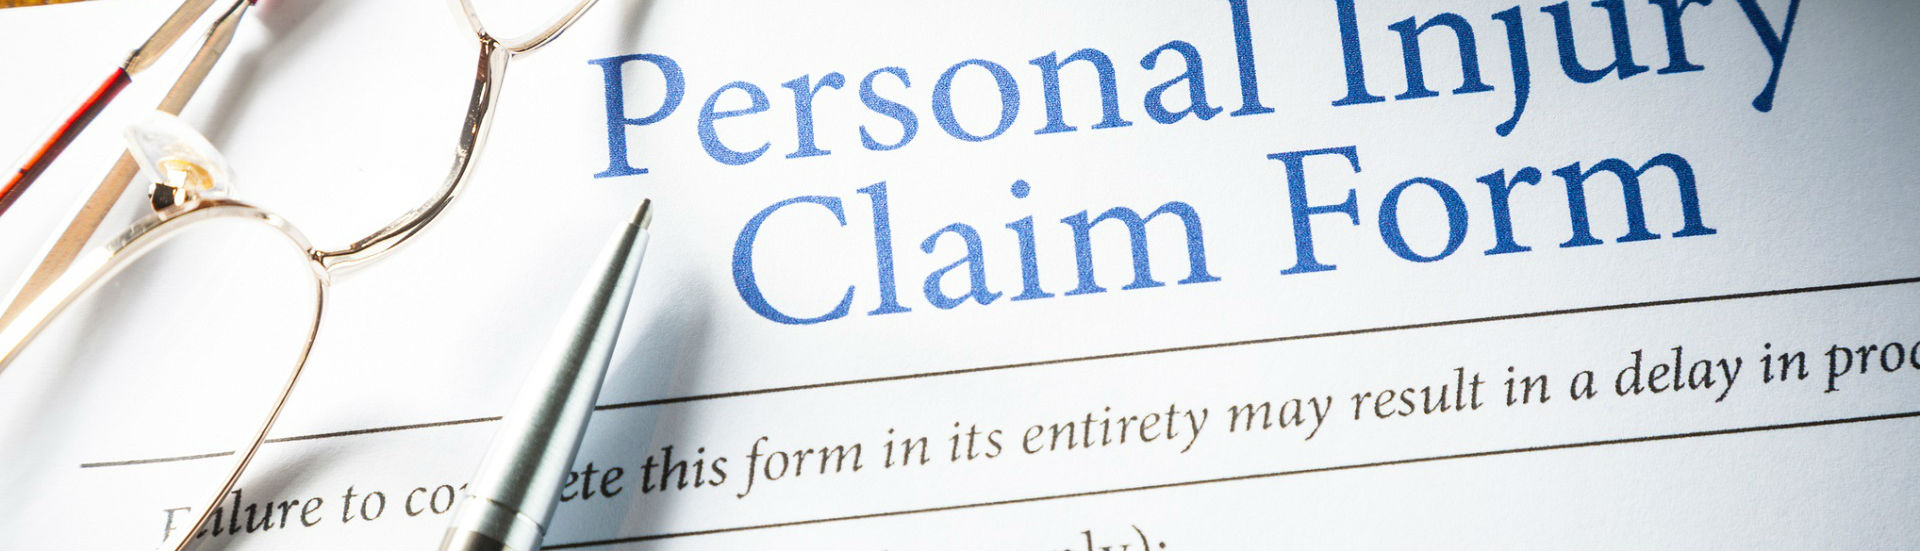 Specialists in Personal Injury* Claims for Accidents at Work